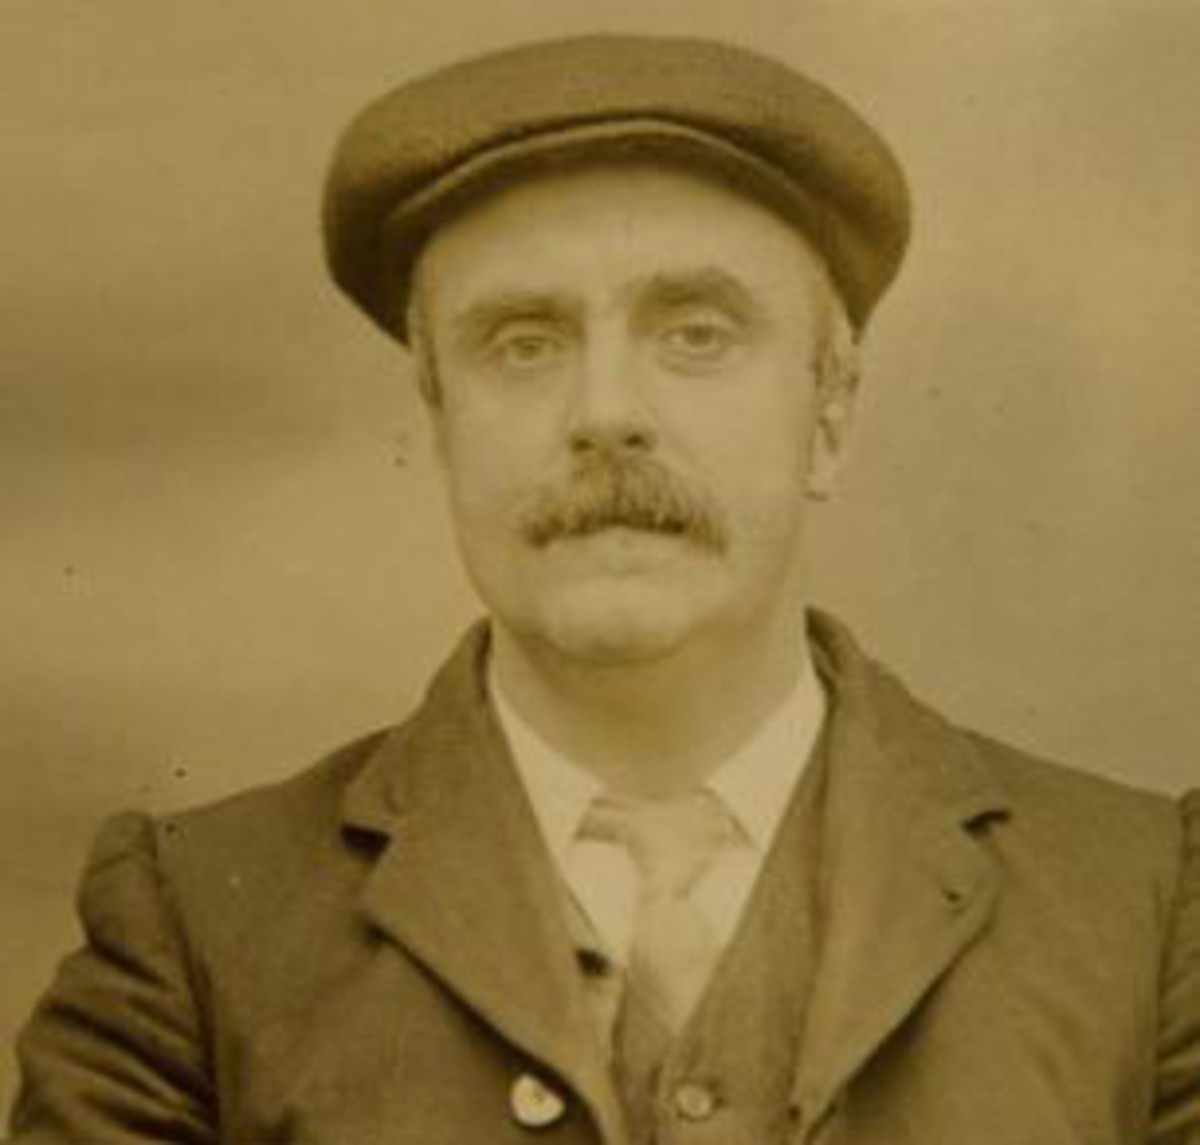 A police mugshot of Thomas Gilbert, the real life leader of the Peaky Blinders.